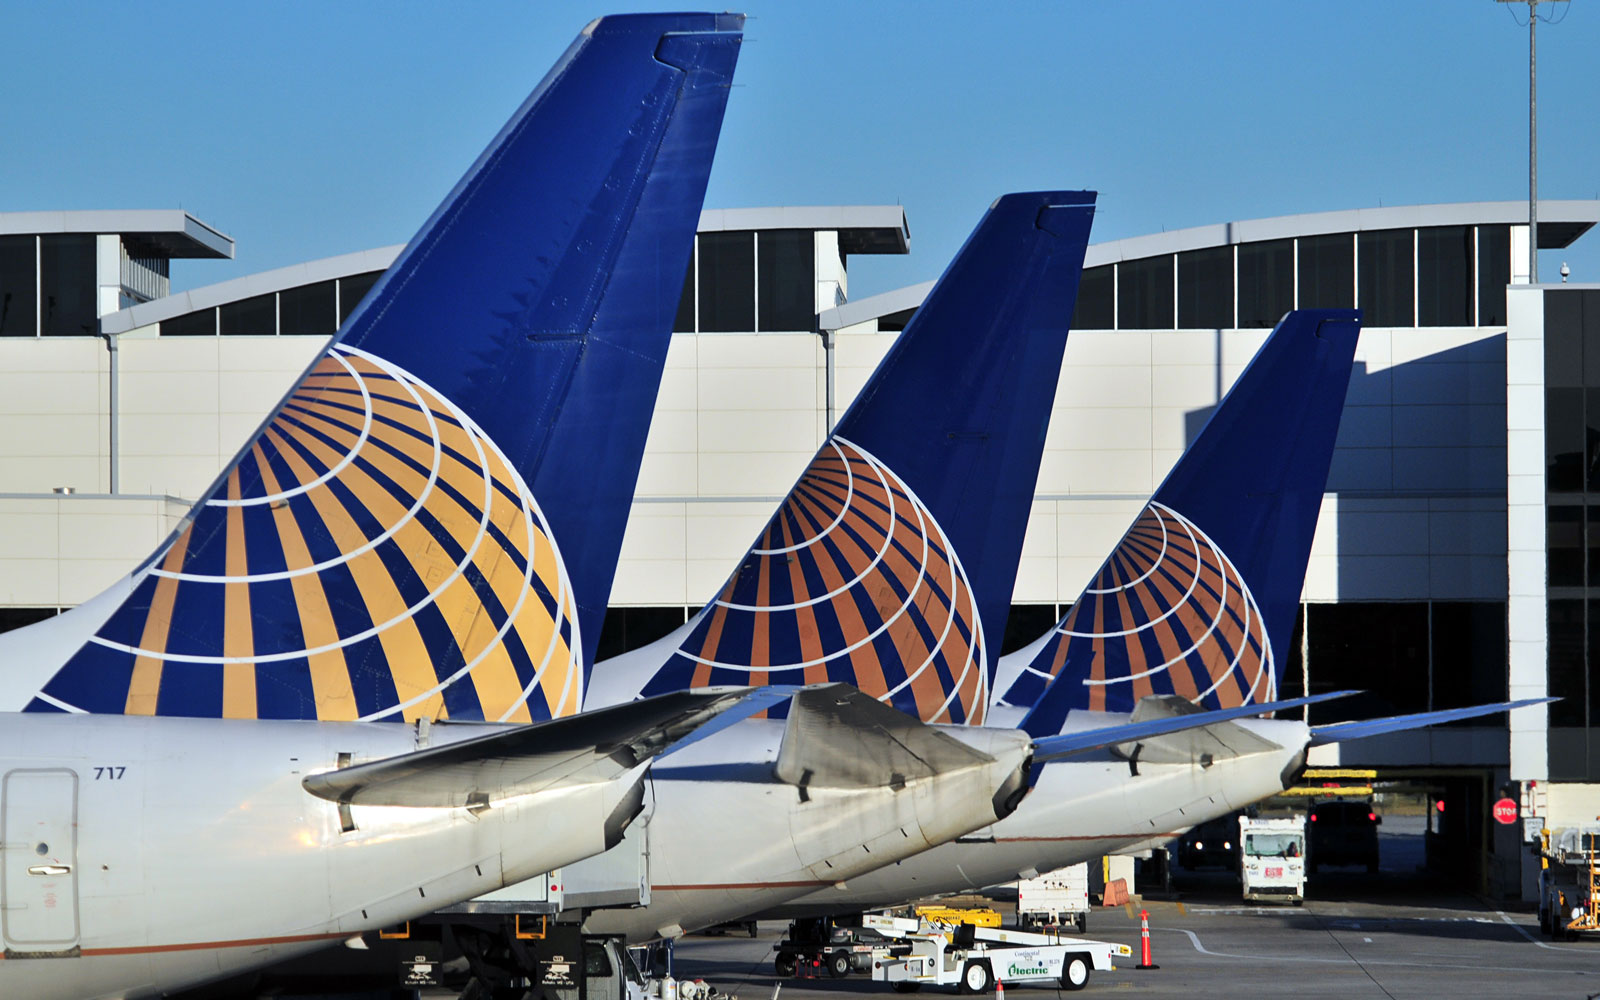 The best airlines according to The Points Guy.